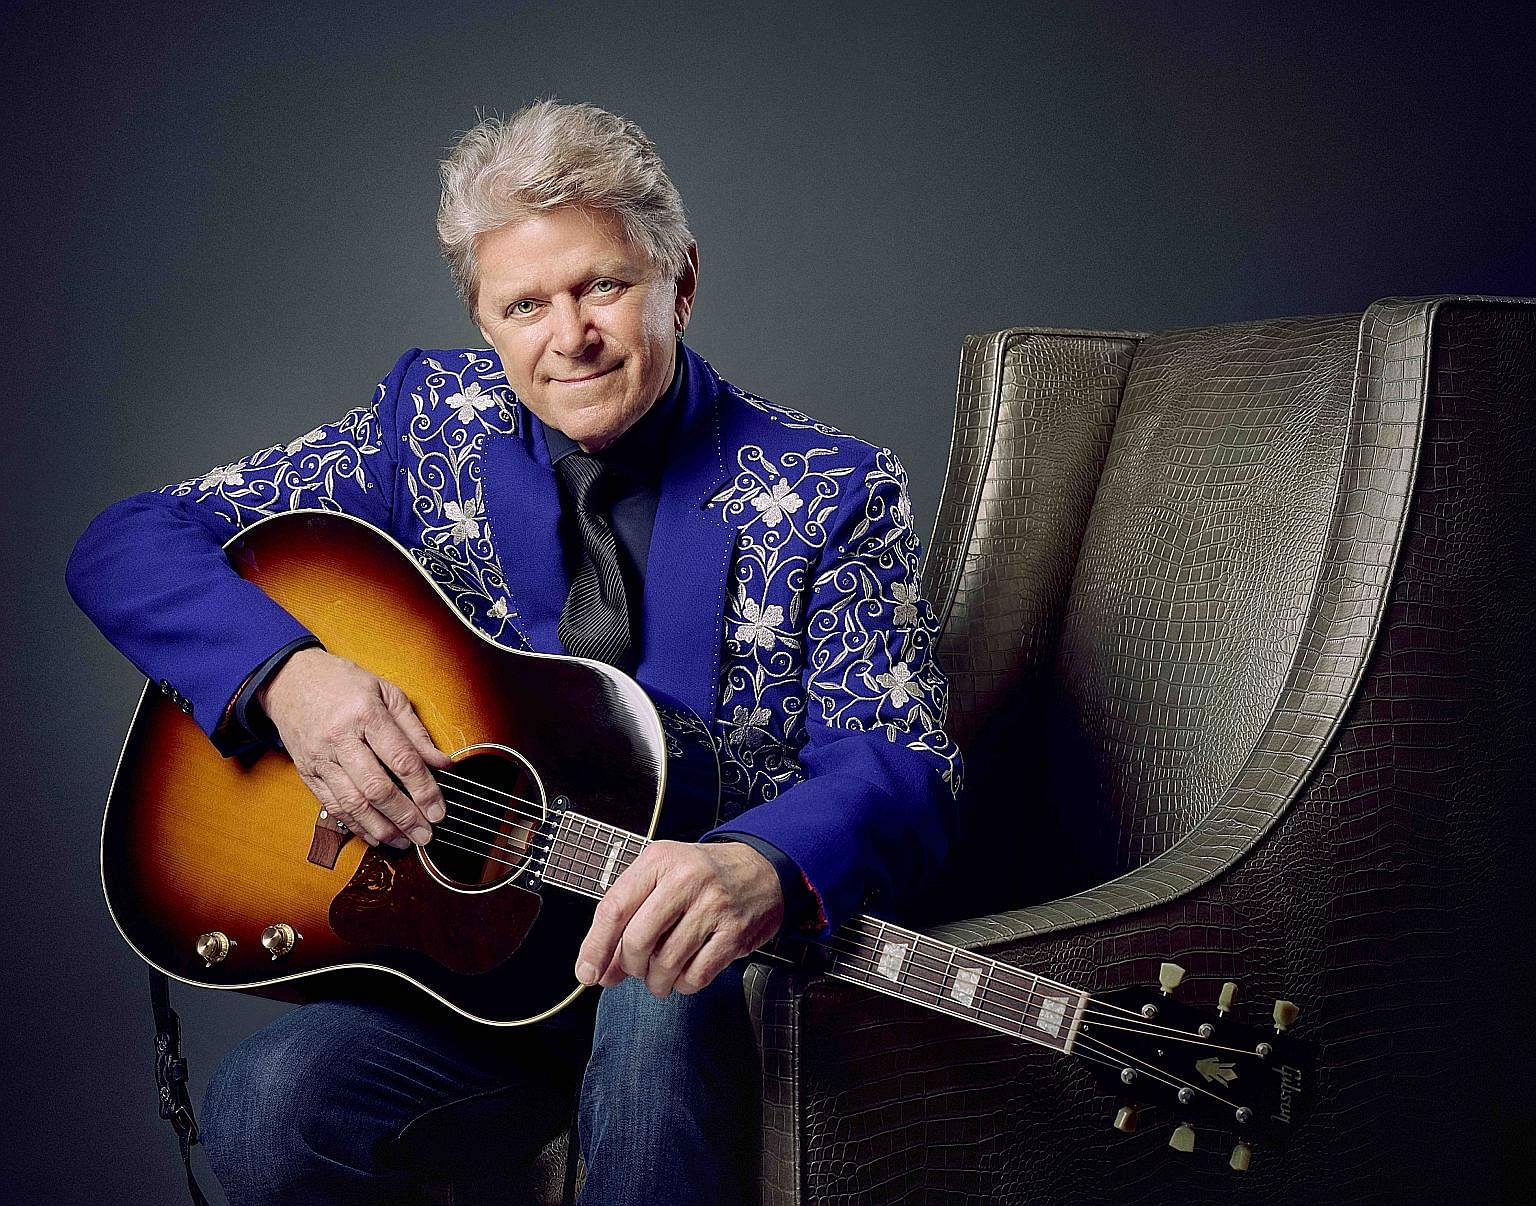 American Singer Peter Cetera Still Draws The Crowd After 50 Years Entertainment News Top Stories The Straits Times